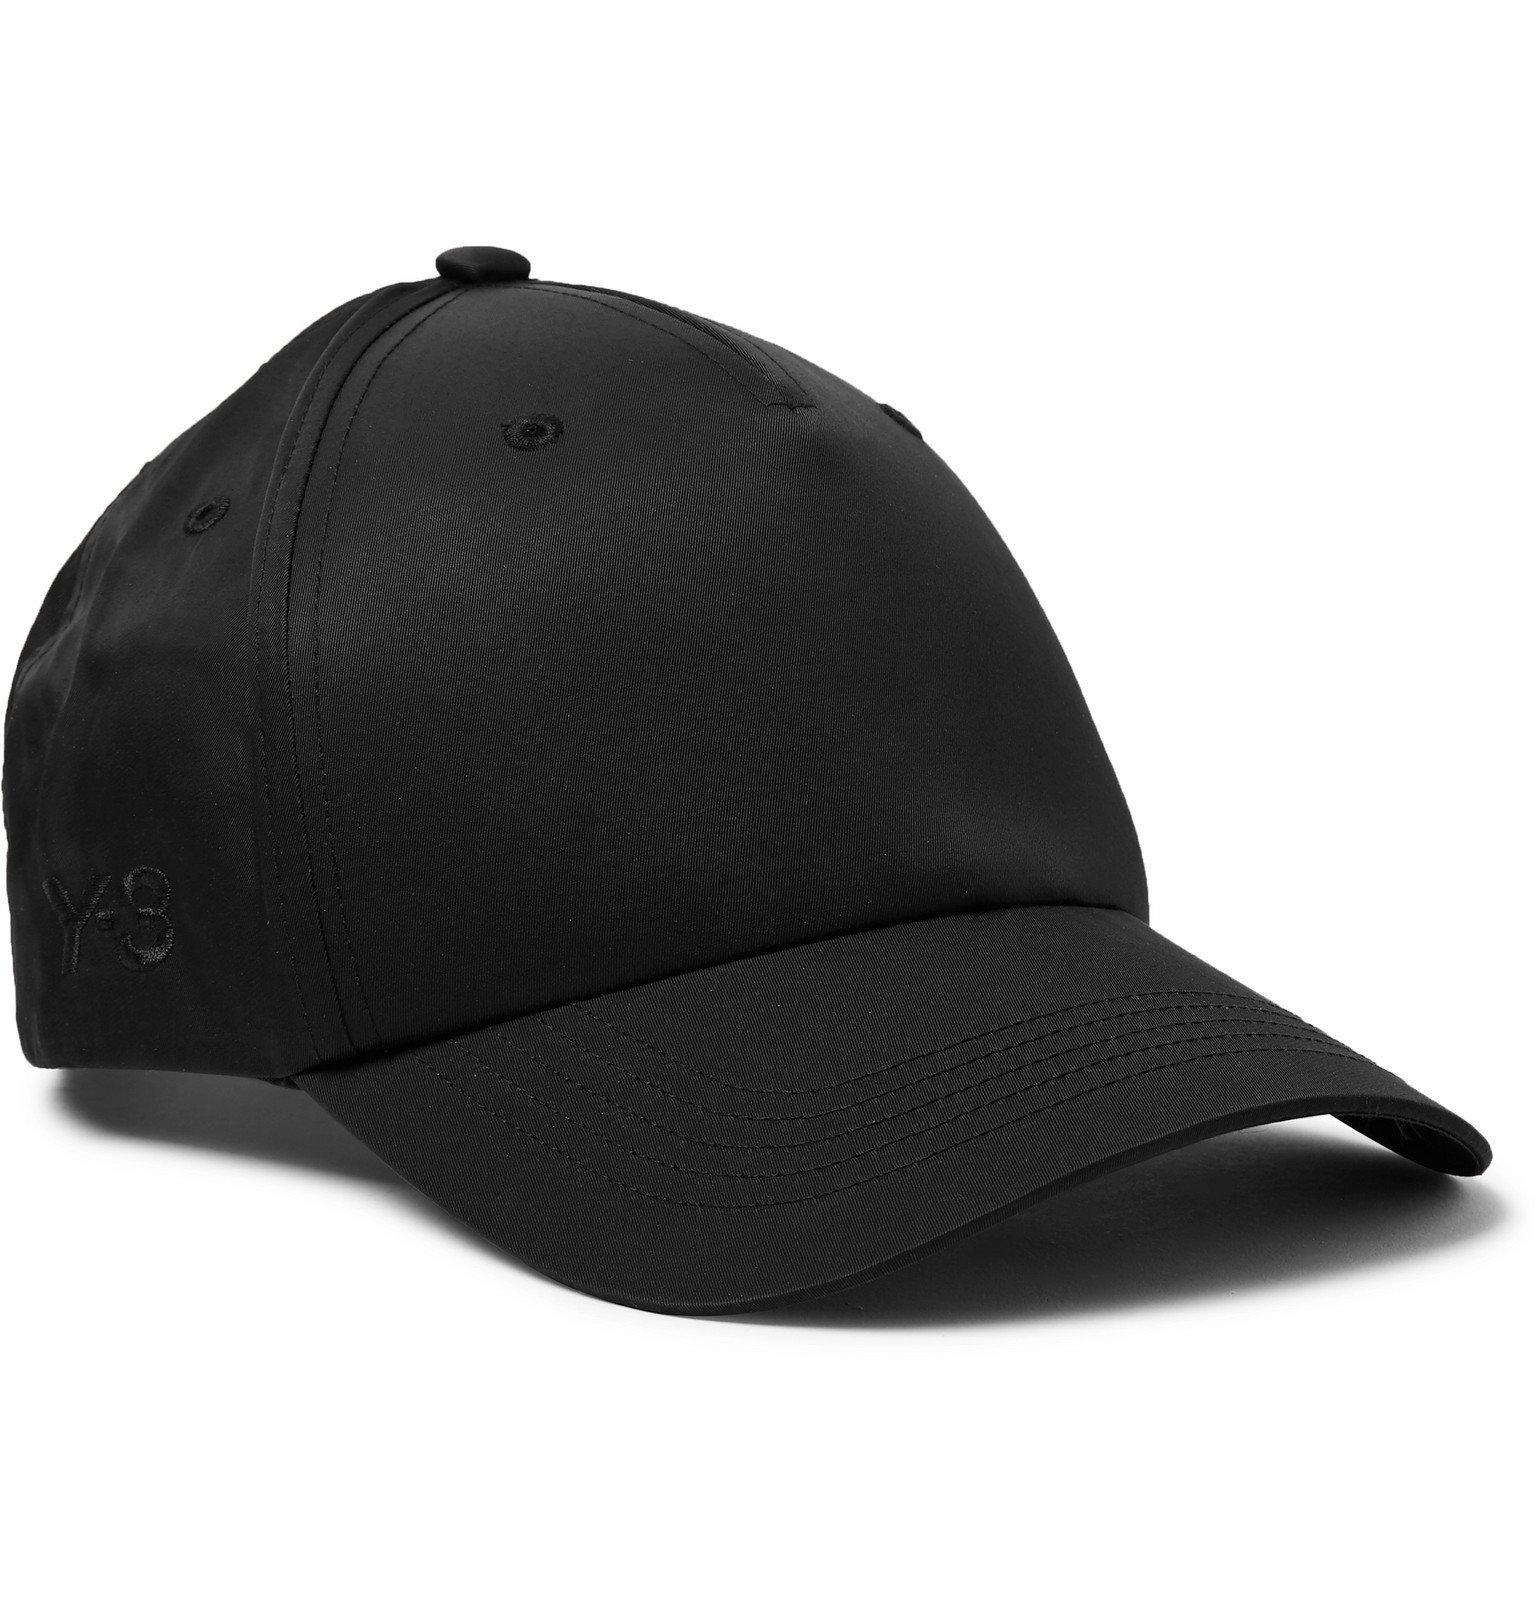 Y-3 - Logo-Embroidered Nylon and Cotton-Blend Twill Baseball Cap - Black